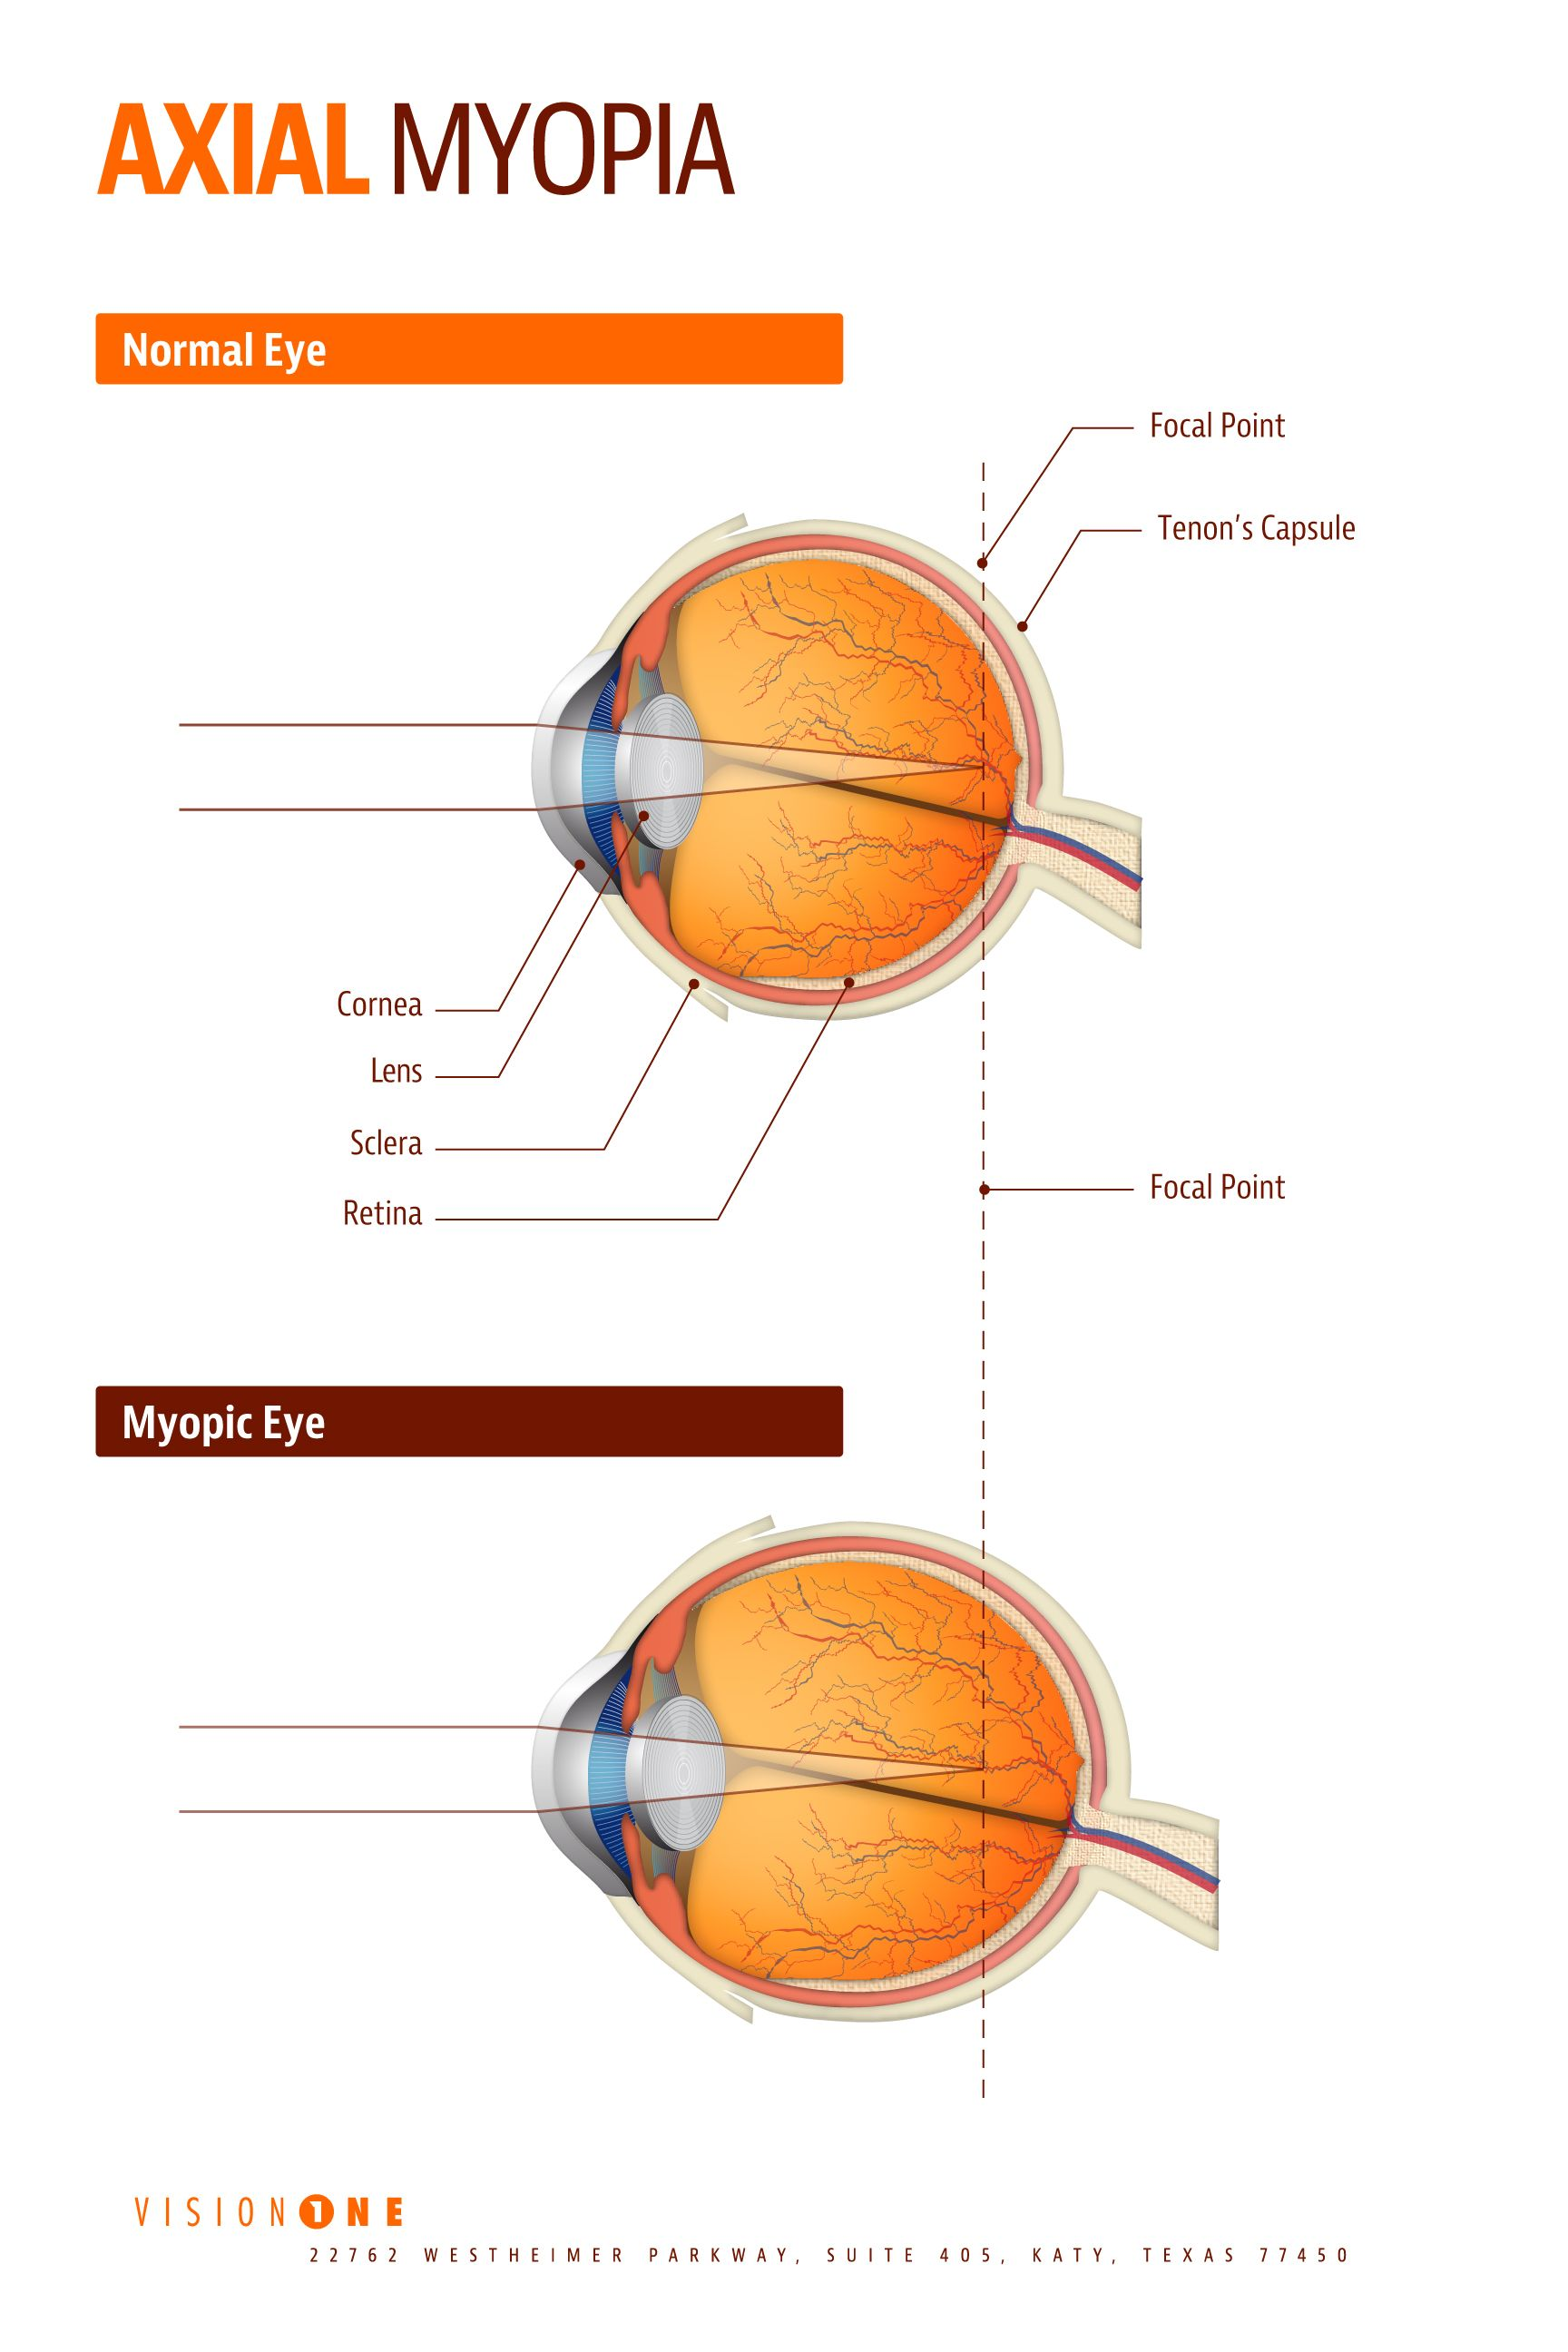 hight resolution of image result for high axial myopia